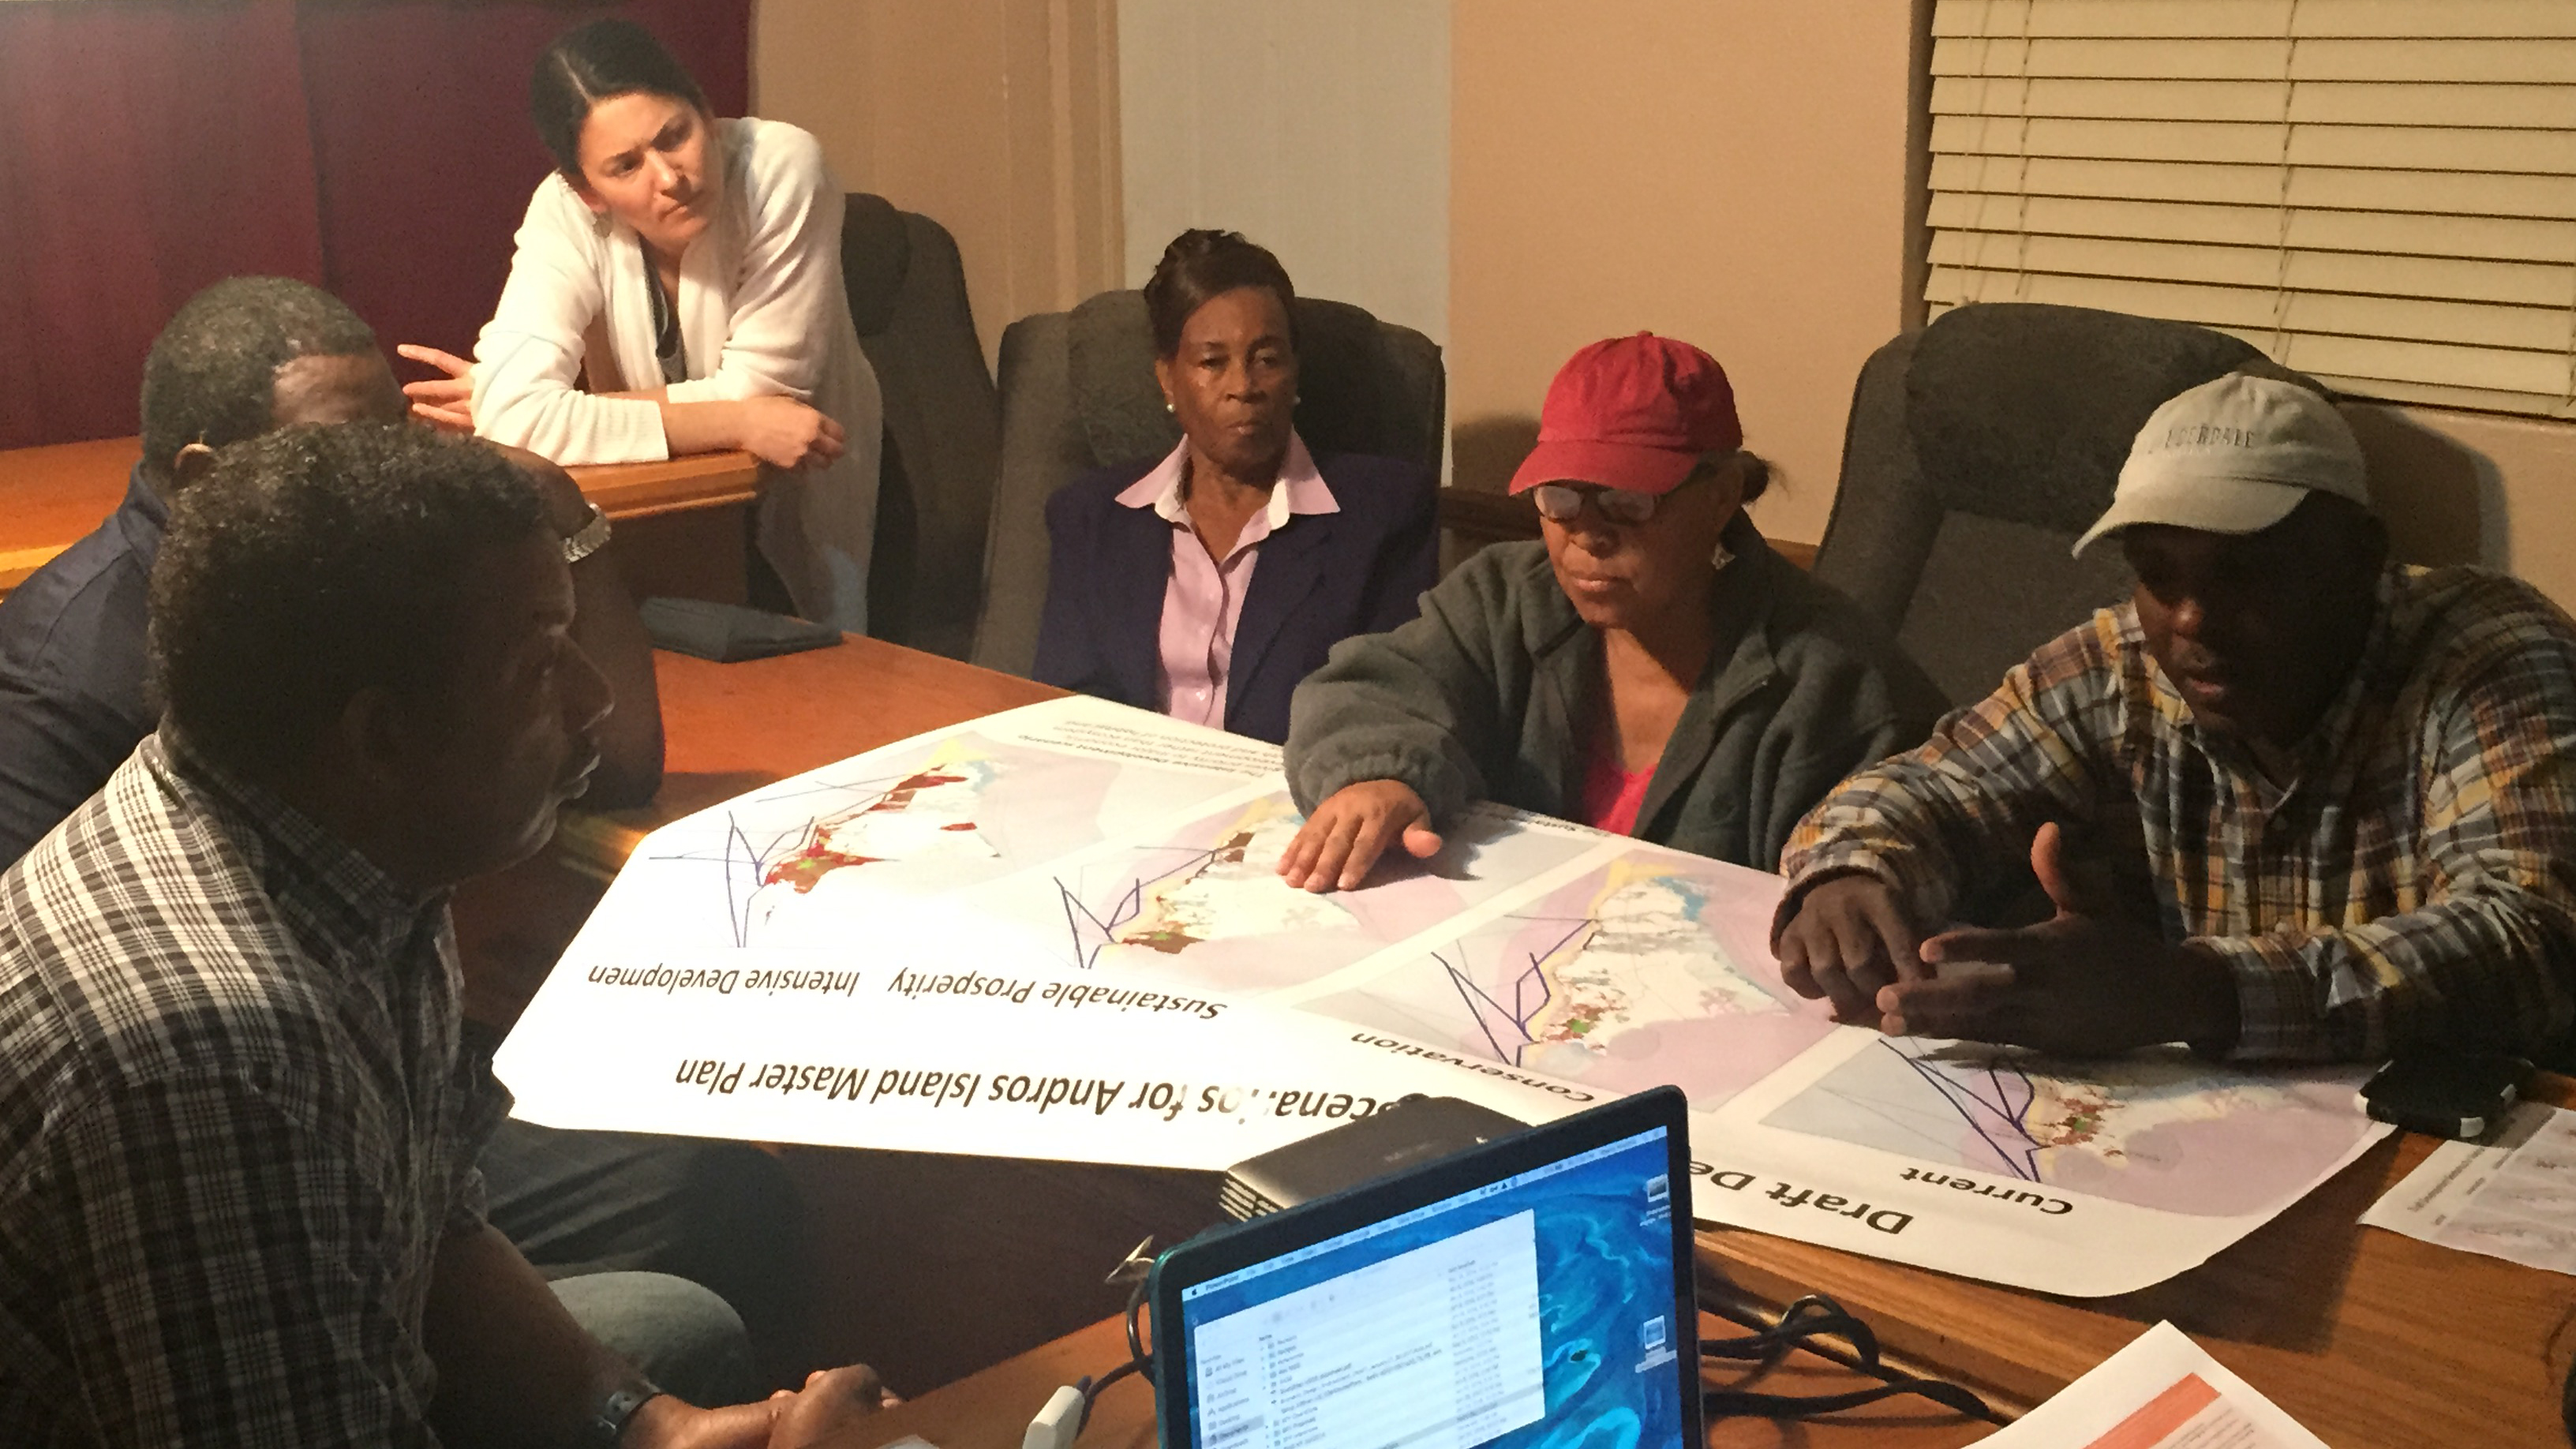 A group of six adults are seated around a table looking together at large sheets of paper.